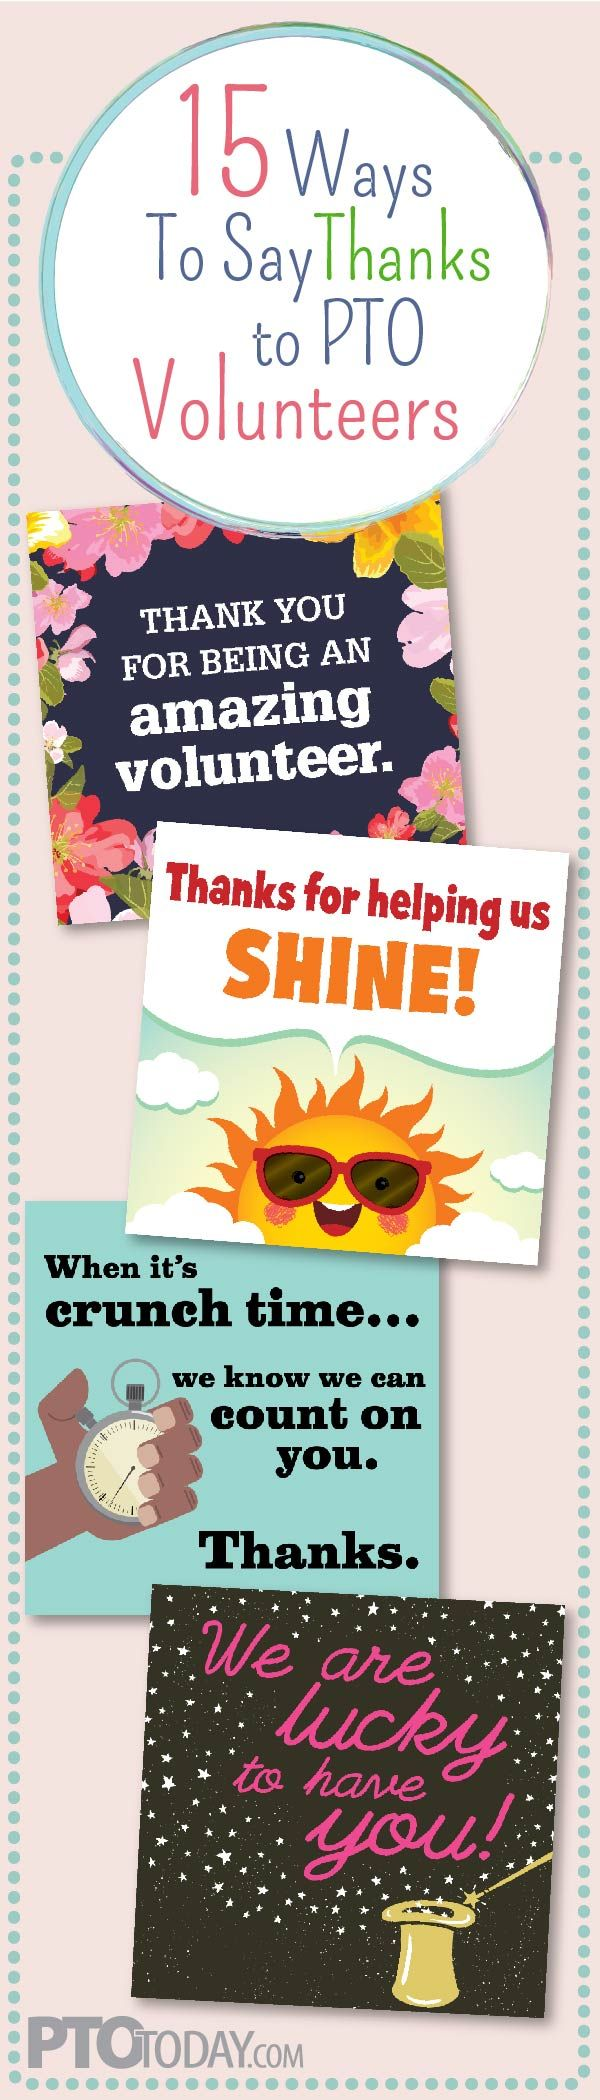 Facebook Graphics for School Volunteer Appreciation 143